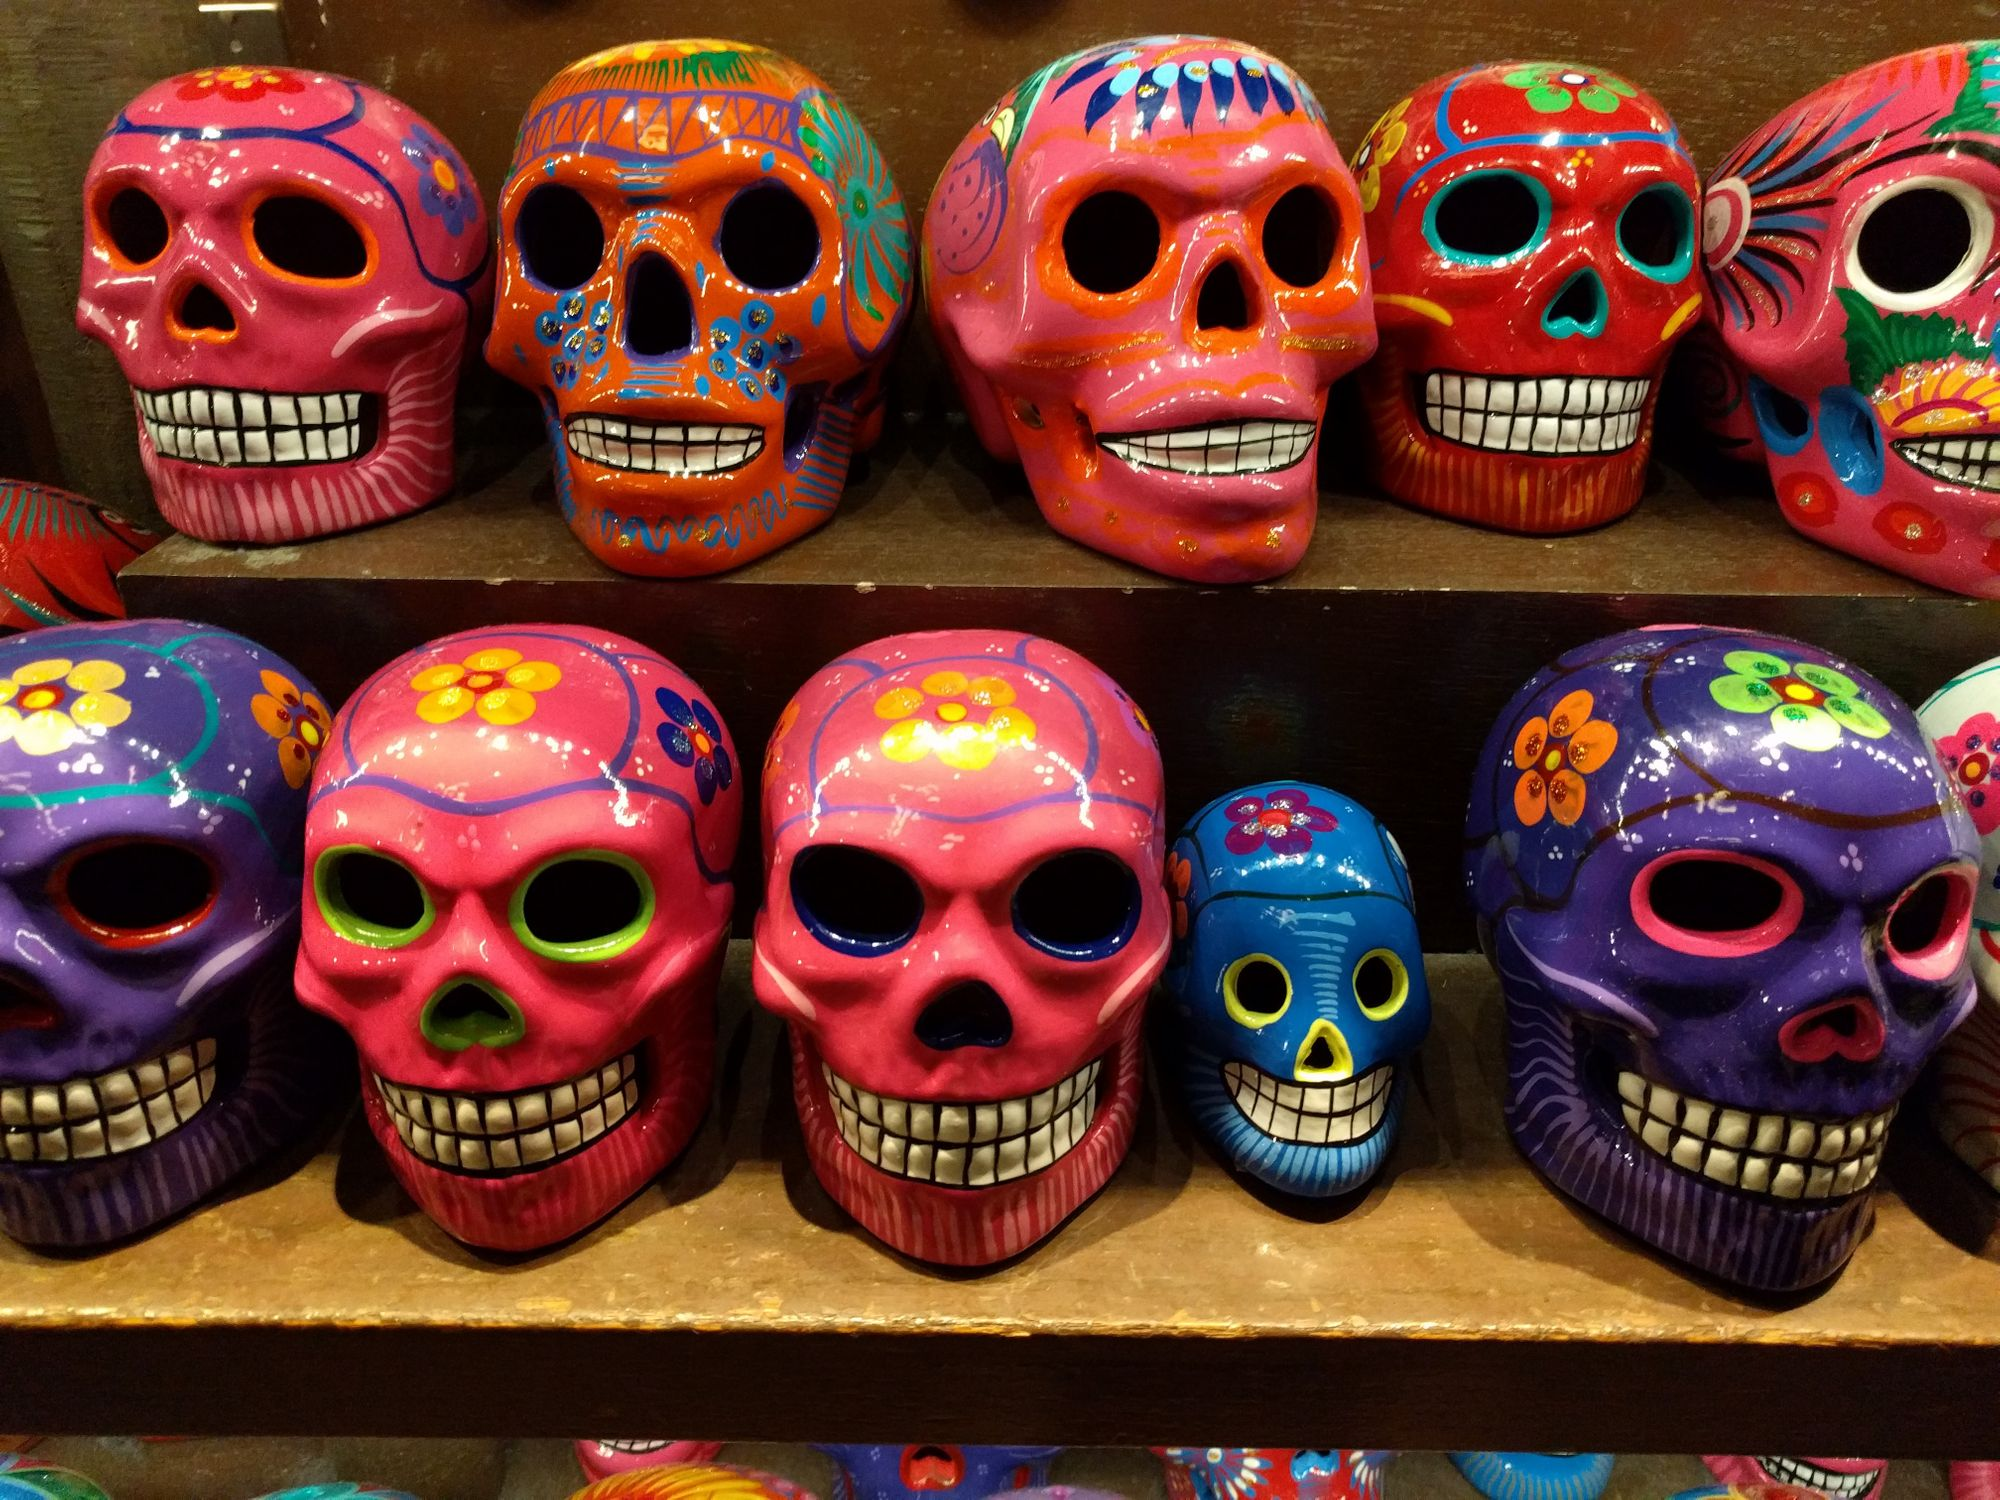 The bright colors of the skulls are a reminder of the celebratory nature of the festivities.